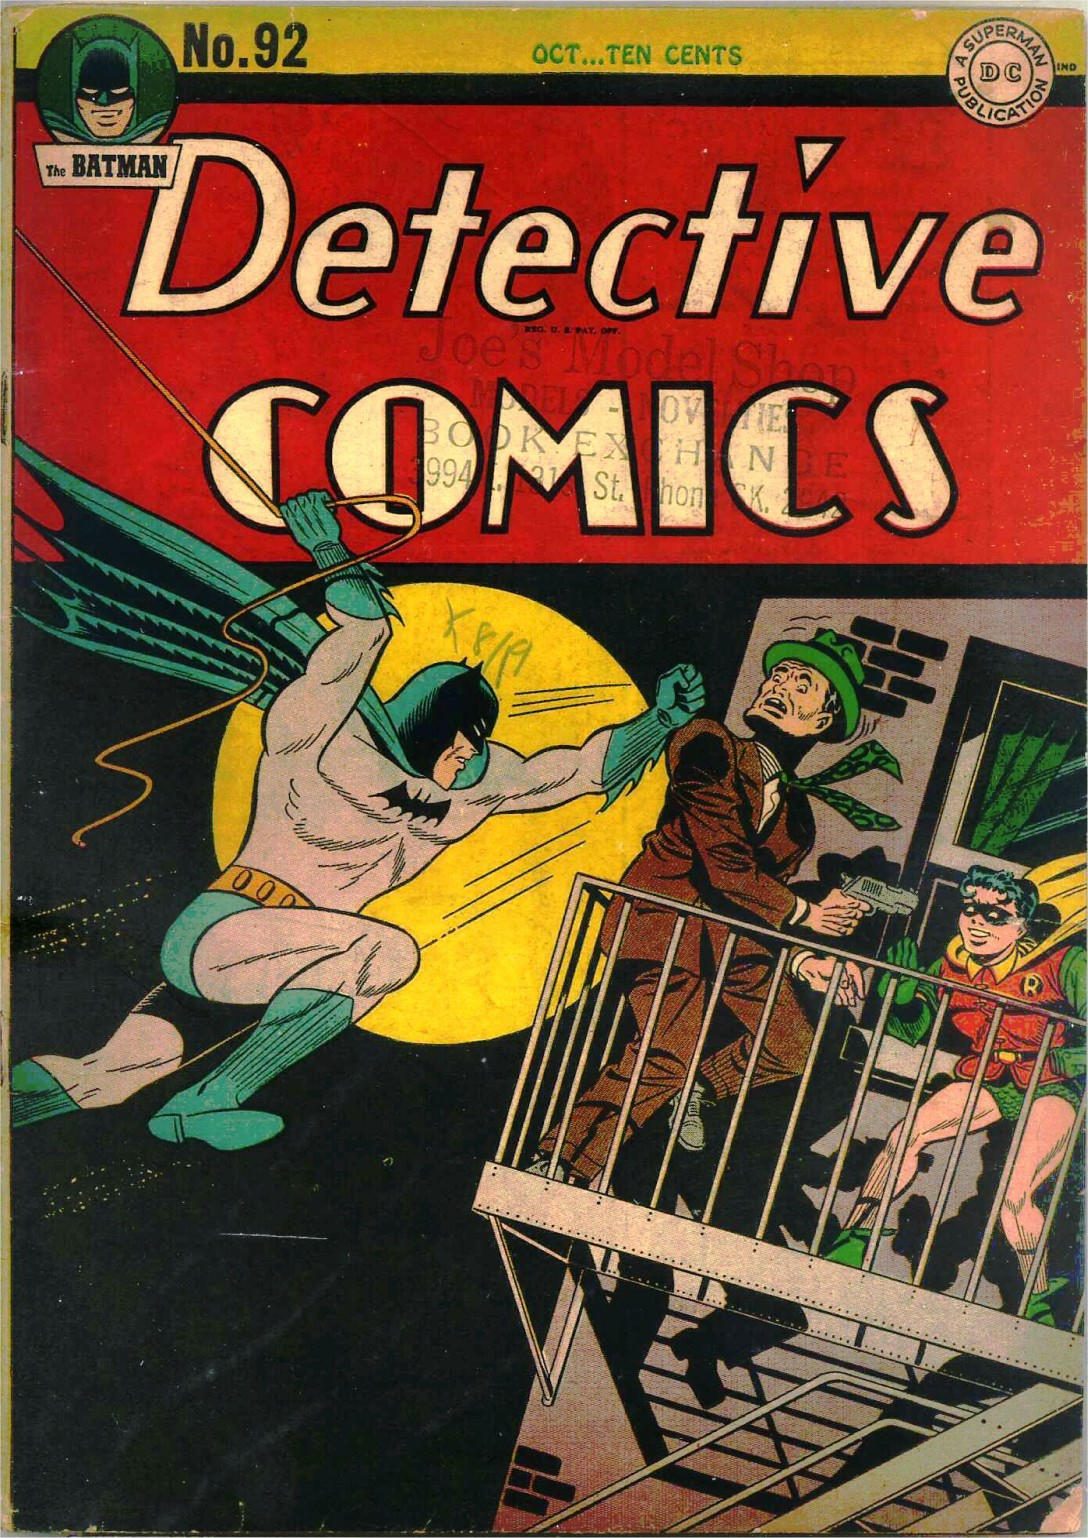 Read online Detective Comics (1937) comic -  Issue #92 - 1